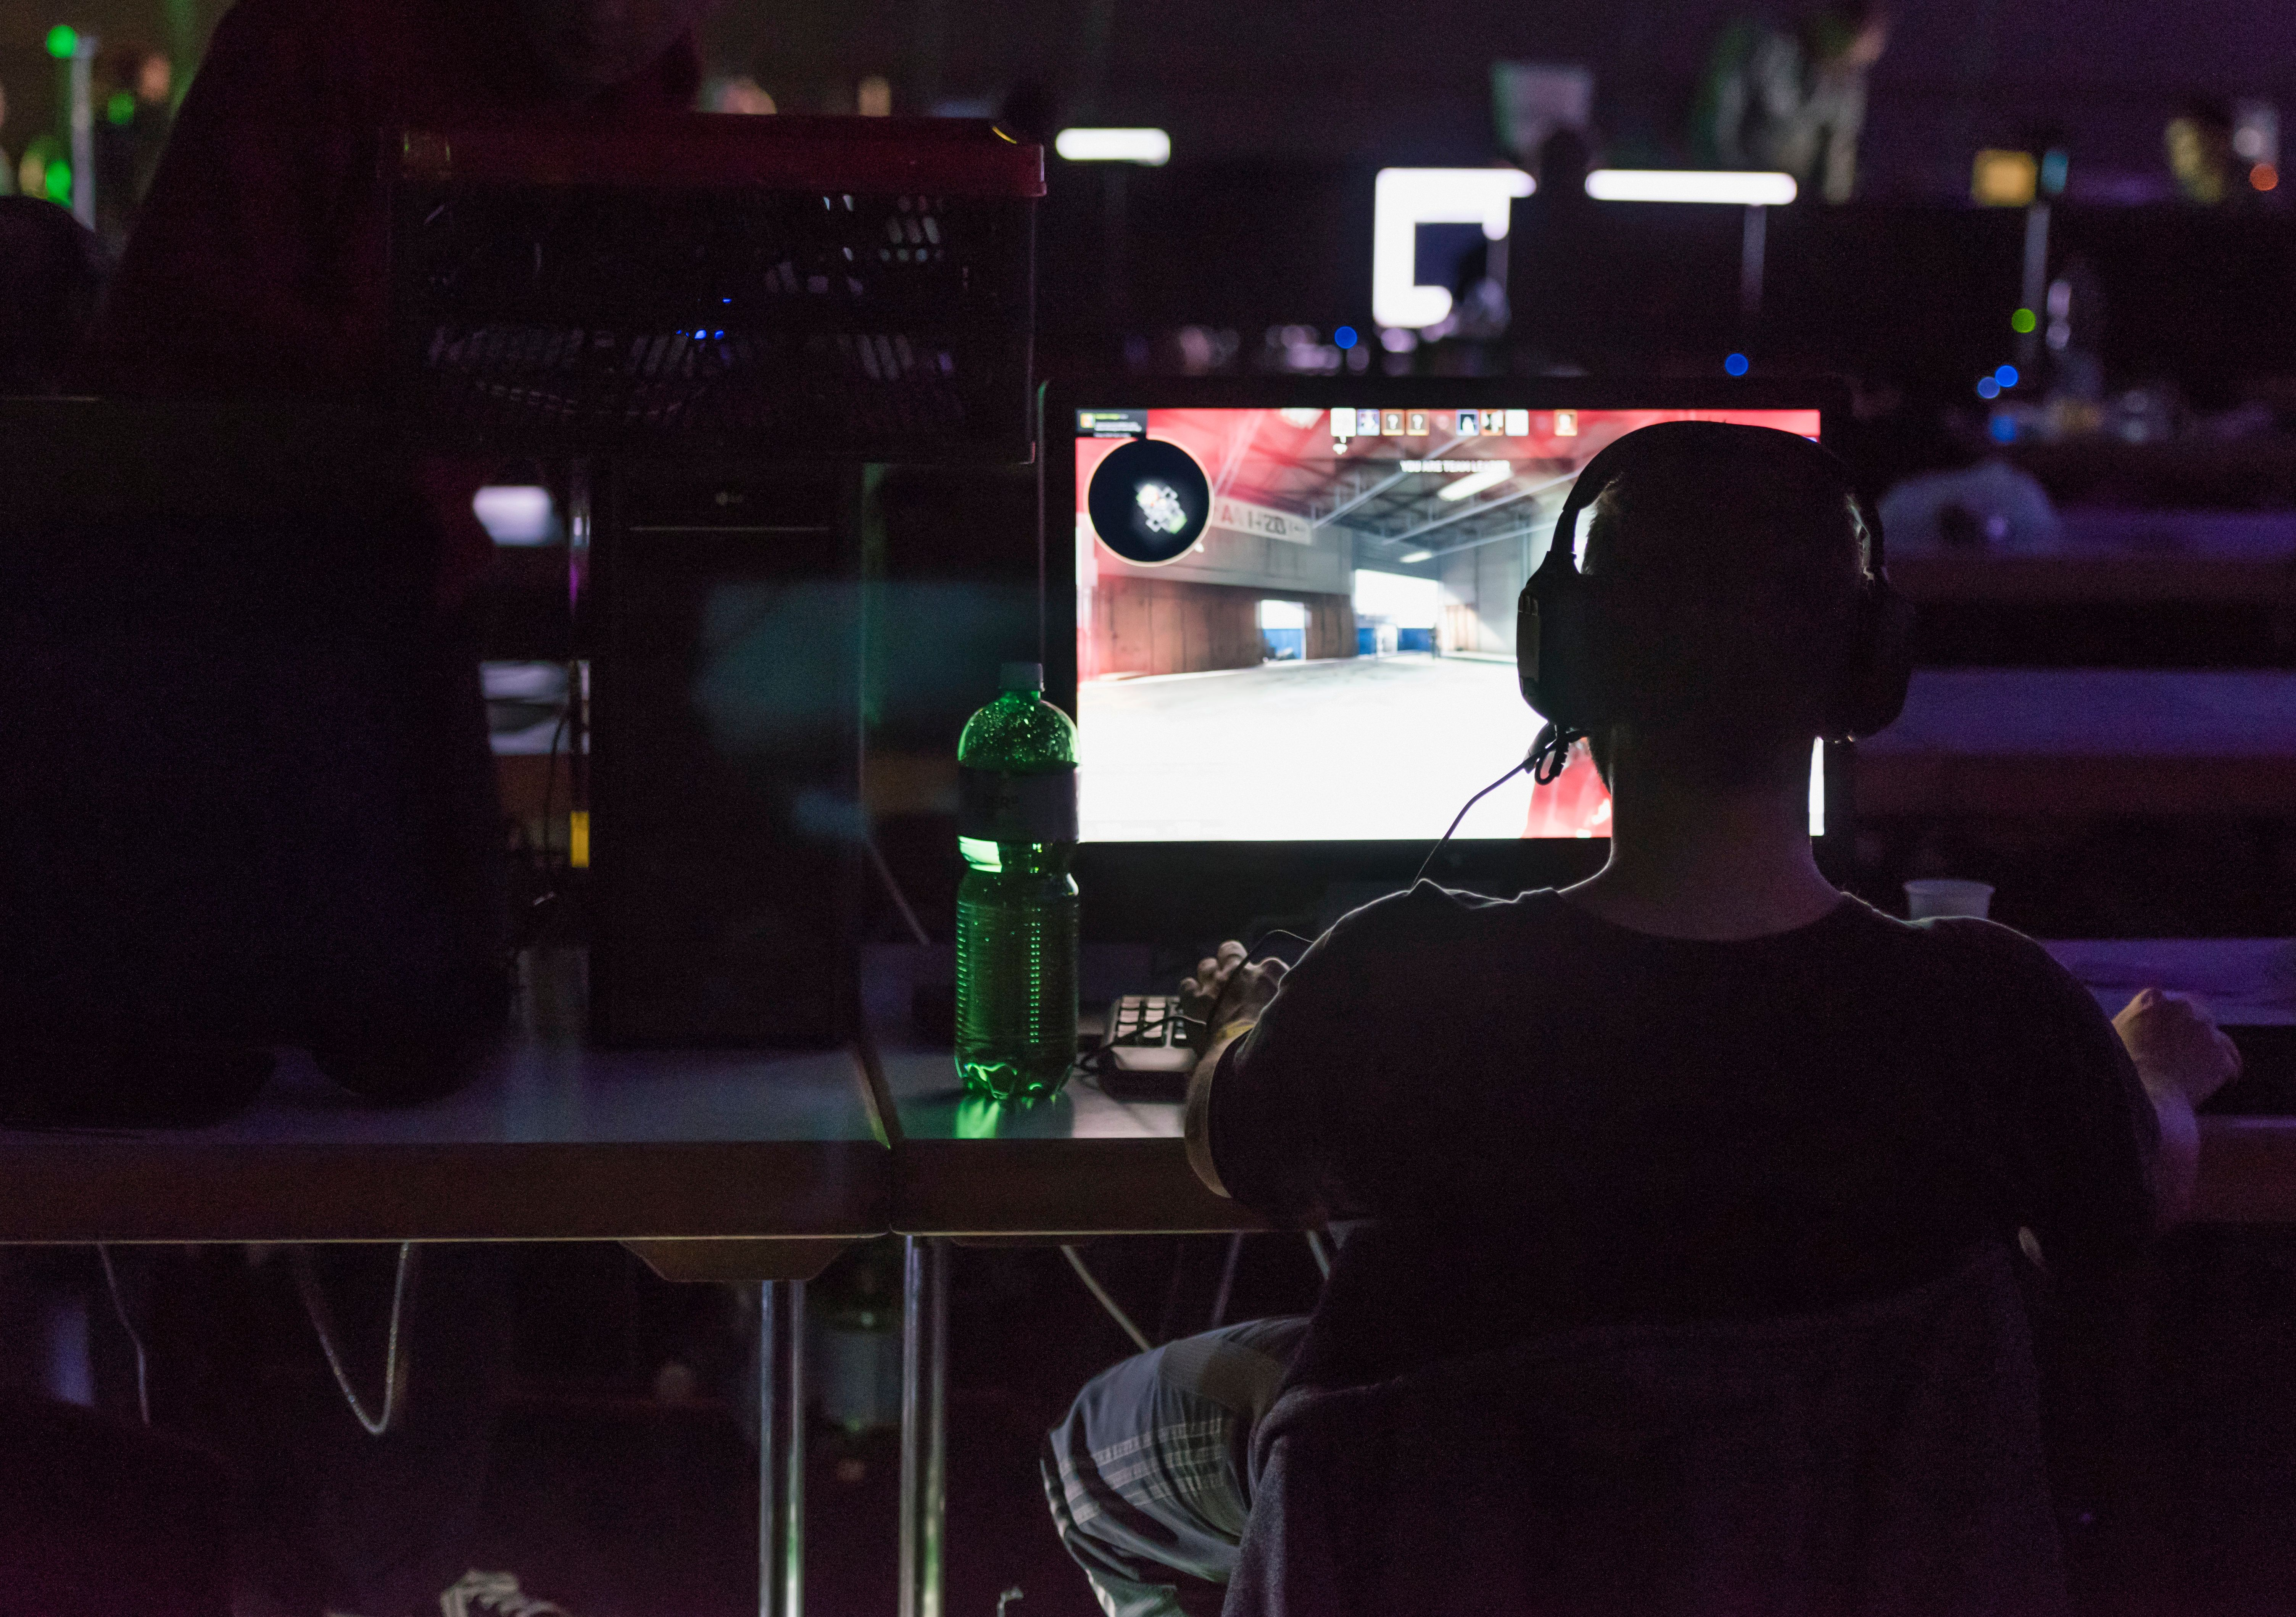 Steam is arguably the largest online store for the hugely popular PC gaming